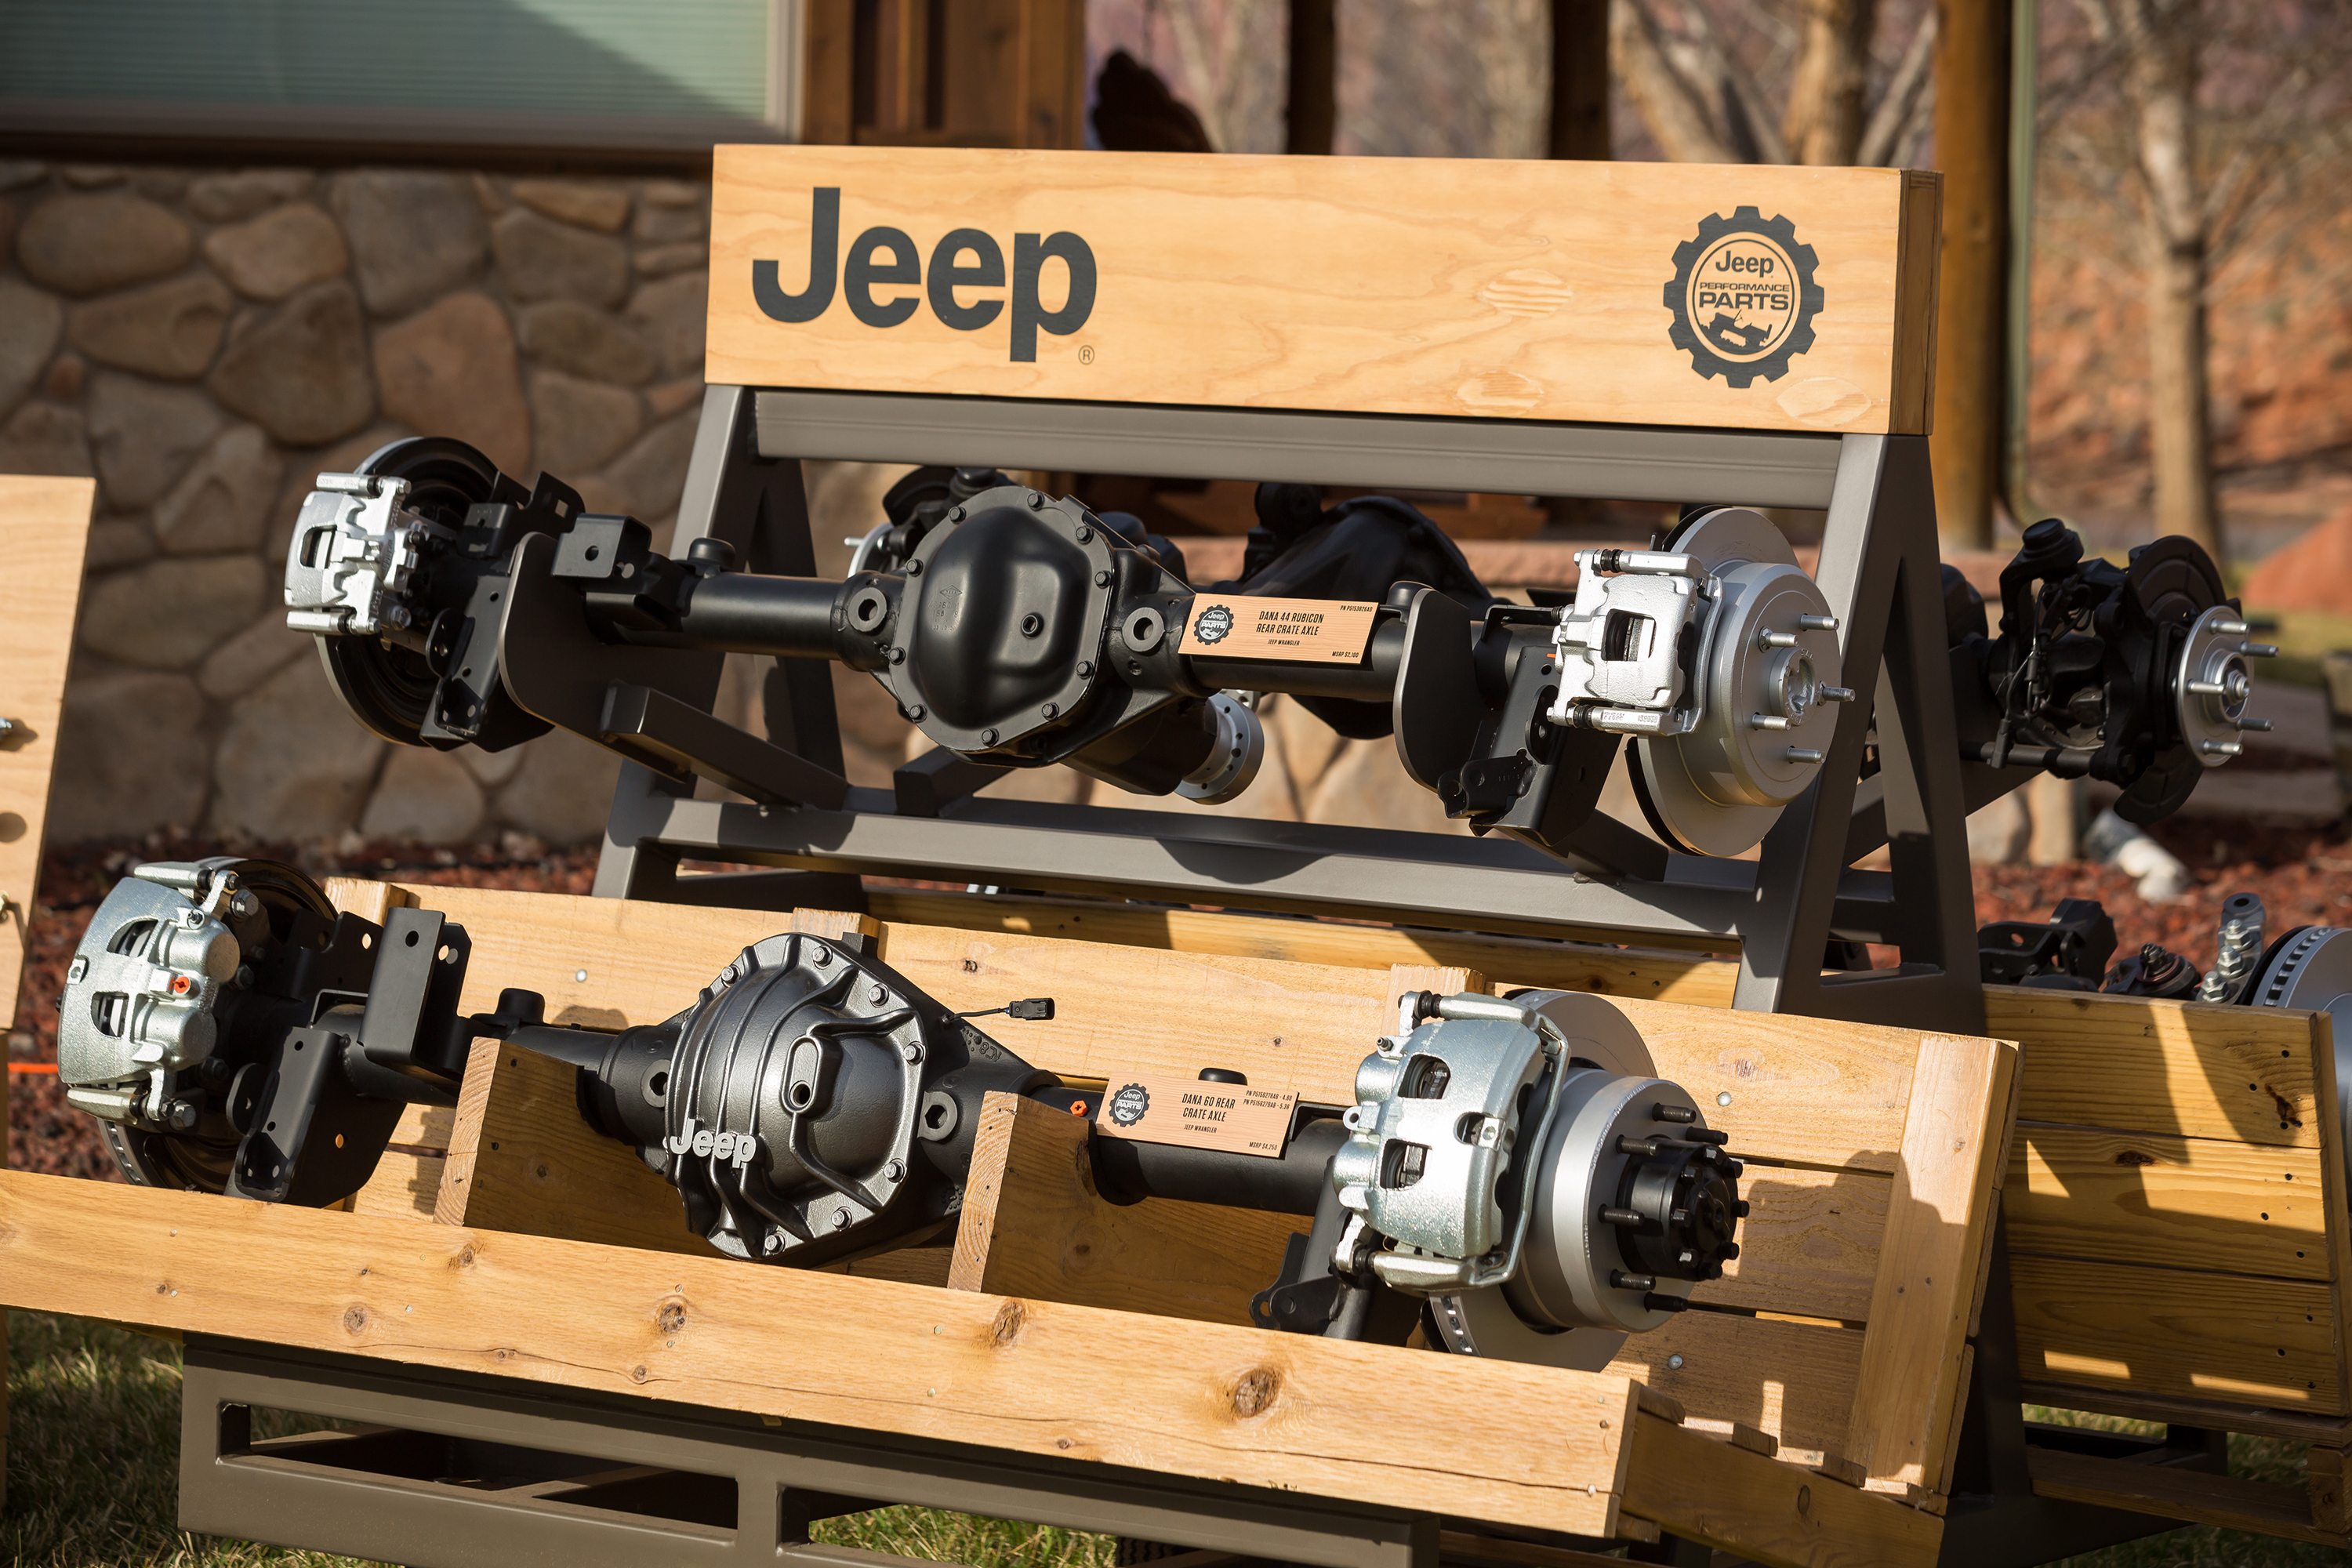 Mopar Announces New Performance Axles for All-new Jeep® Wrangler at